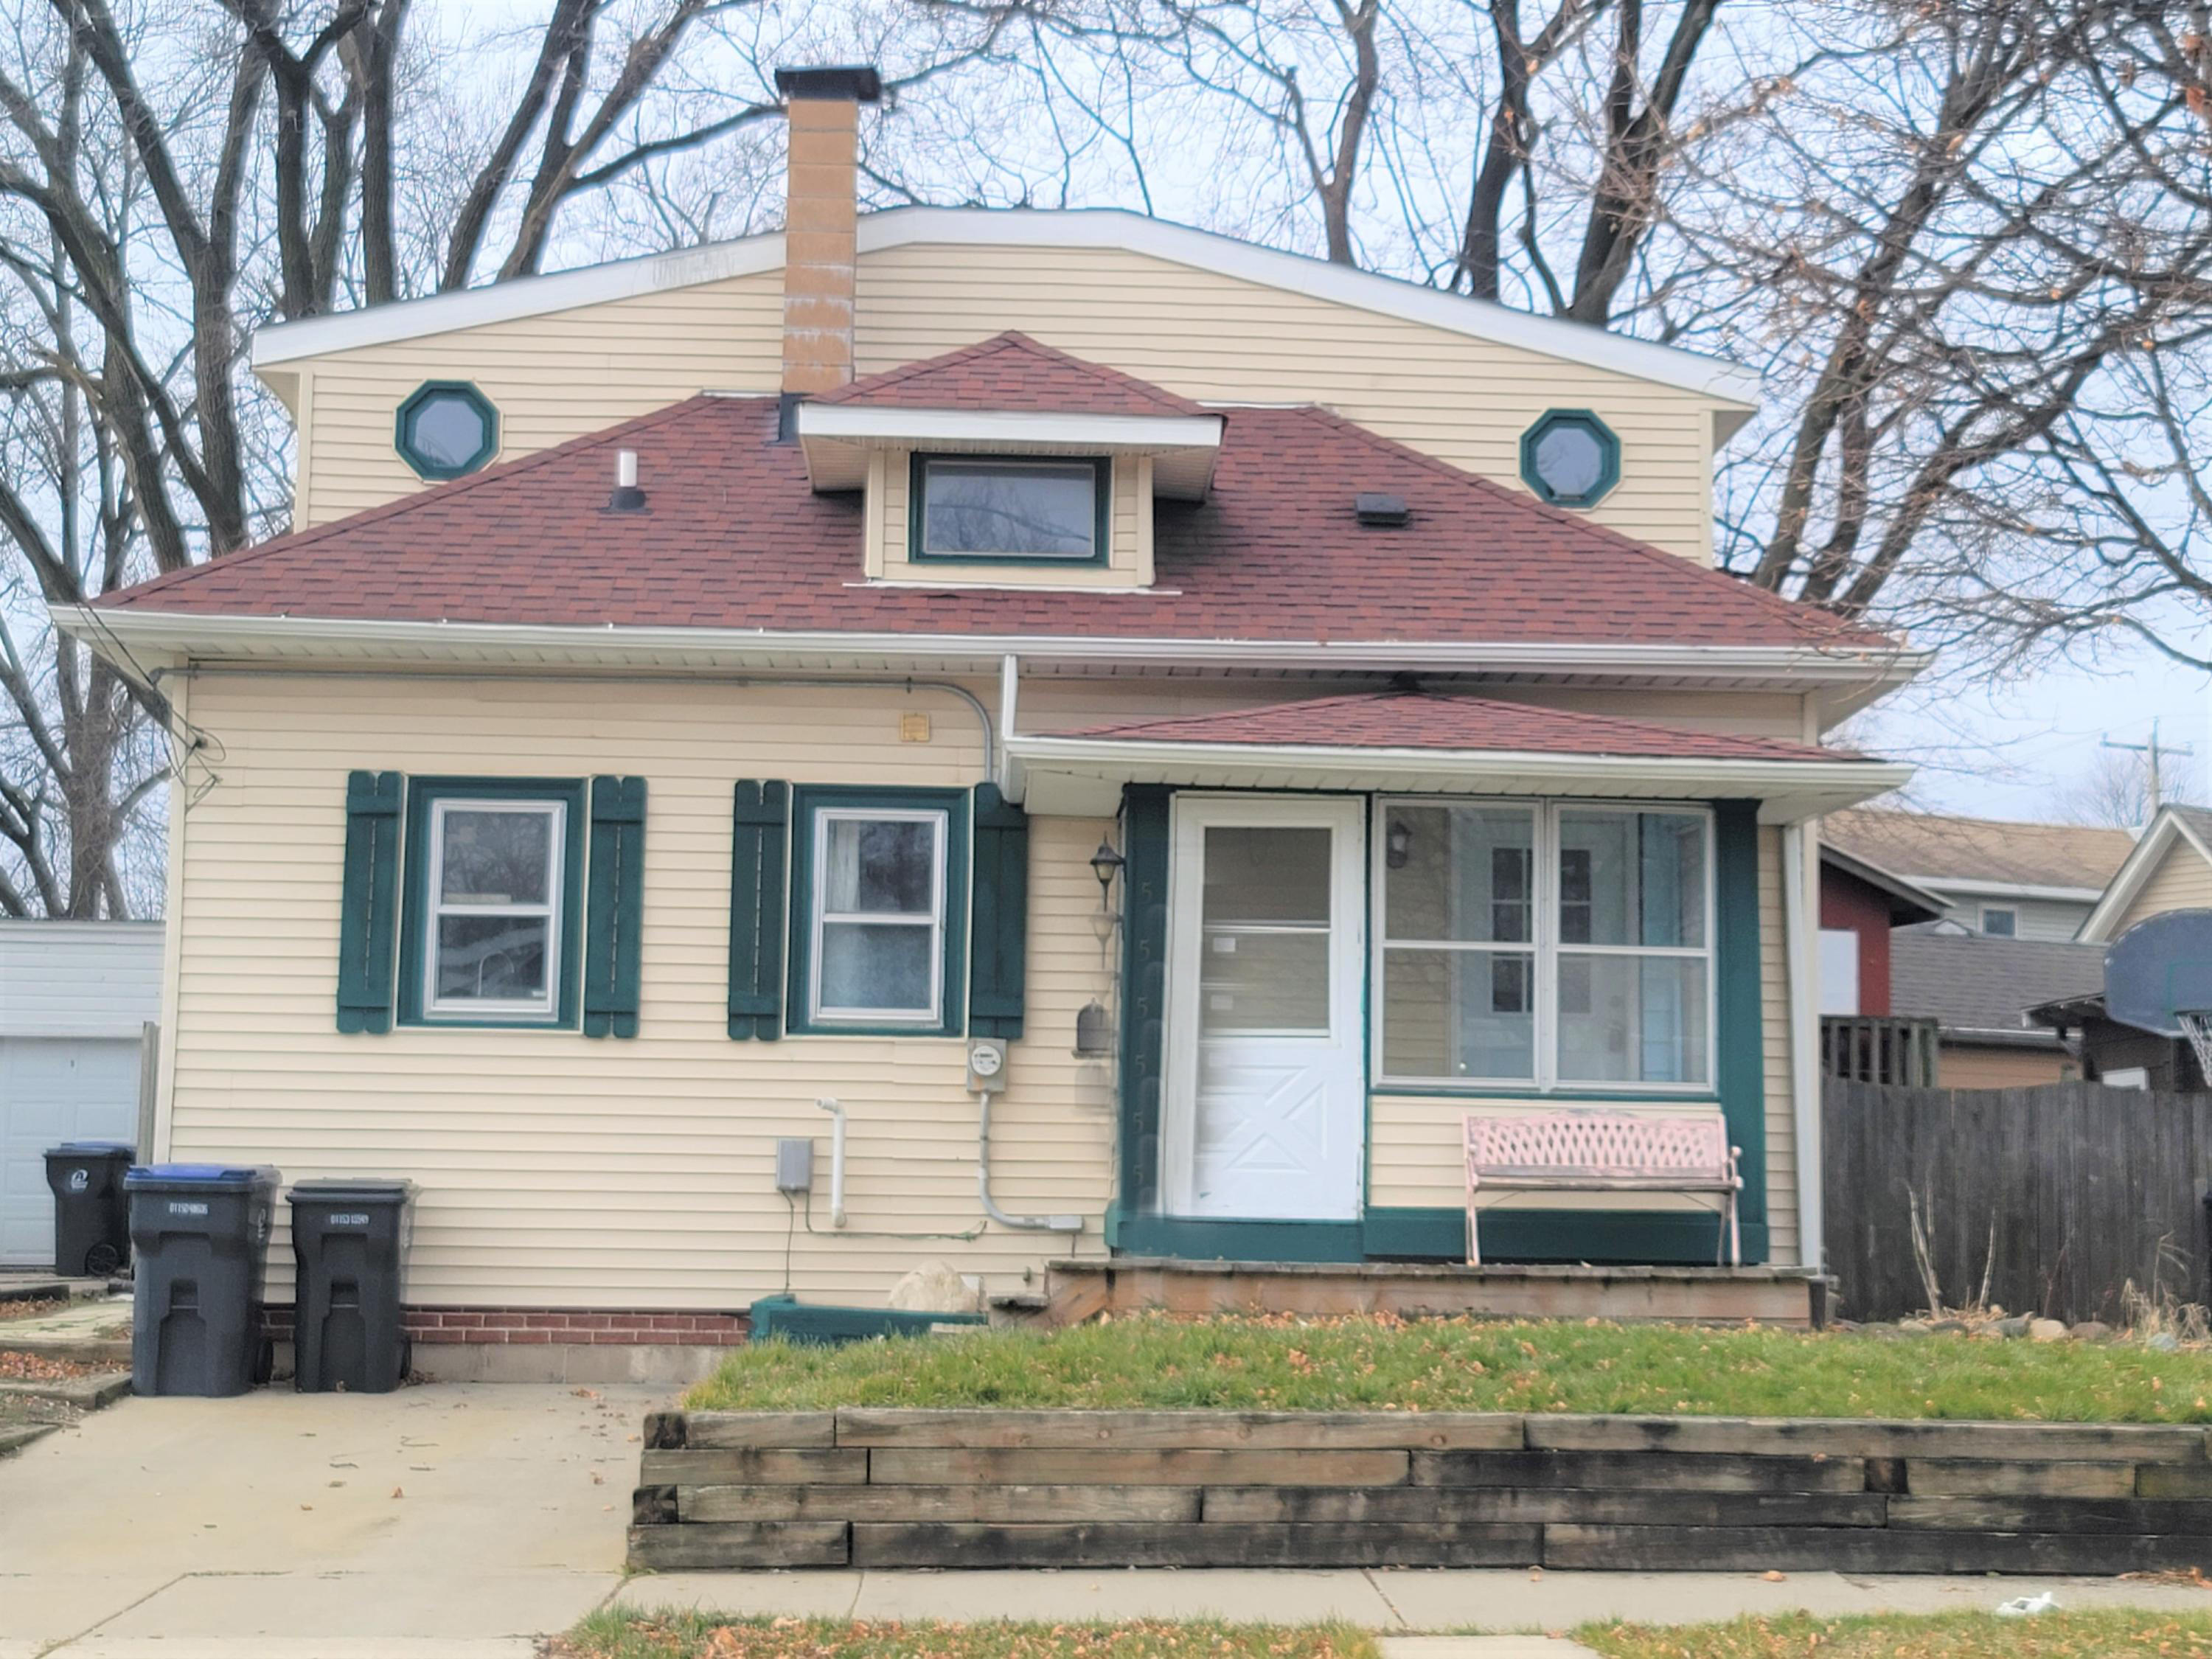 512 Oakland Ave, Waukesha, Wisconsin 53186, 2 Bedrooms Bedrooms, 5 Rooms Rooms,1 BathroomBathrooms,Single-Family,For Sale,Oakland Ave,1723075